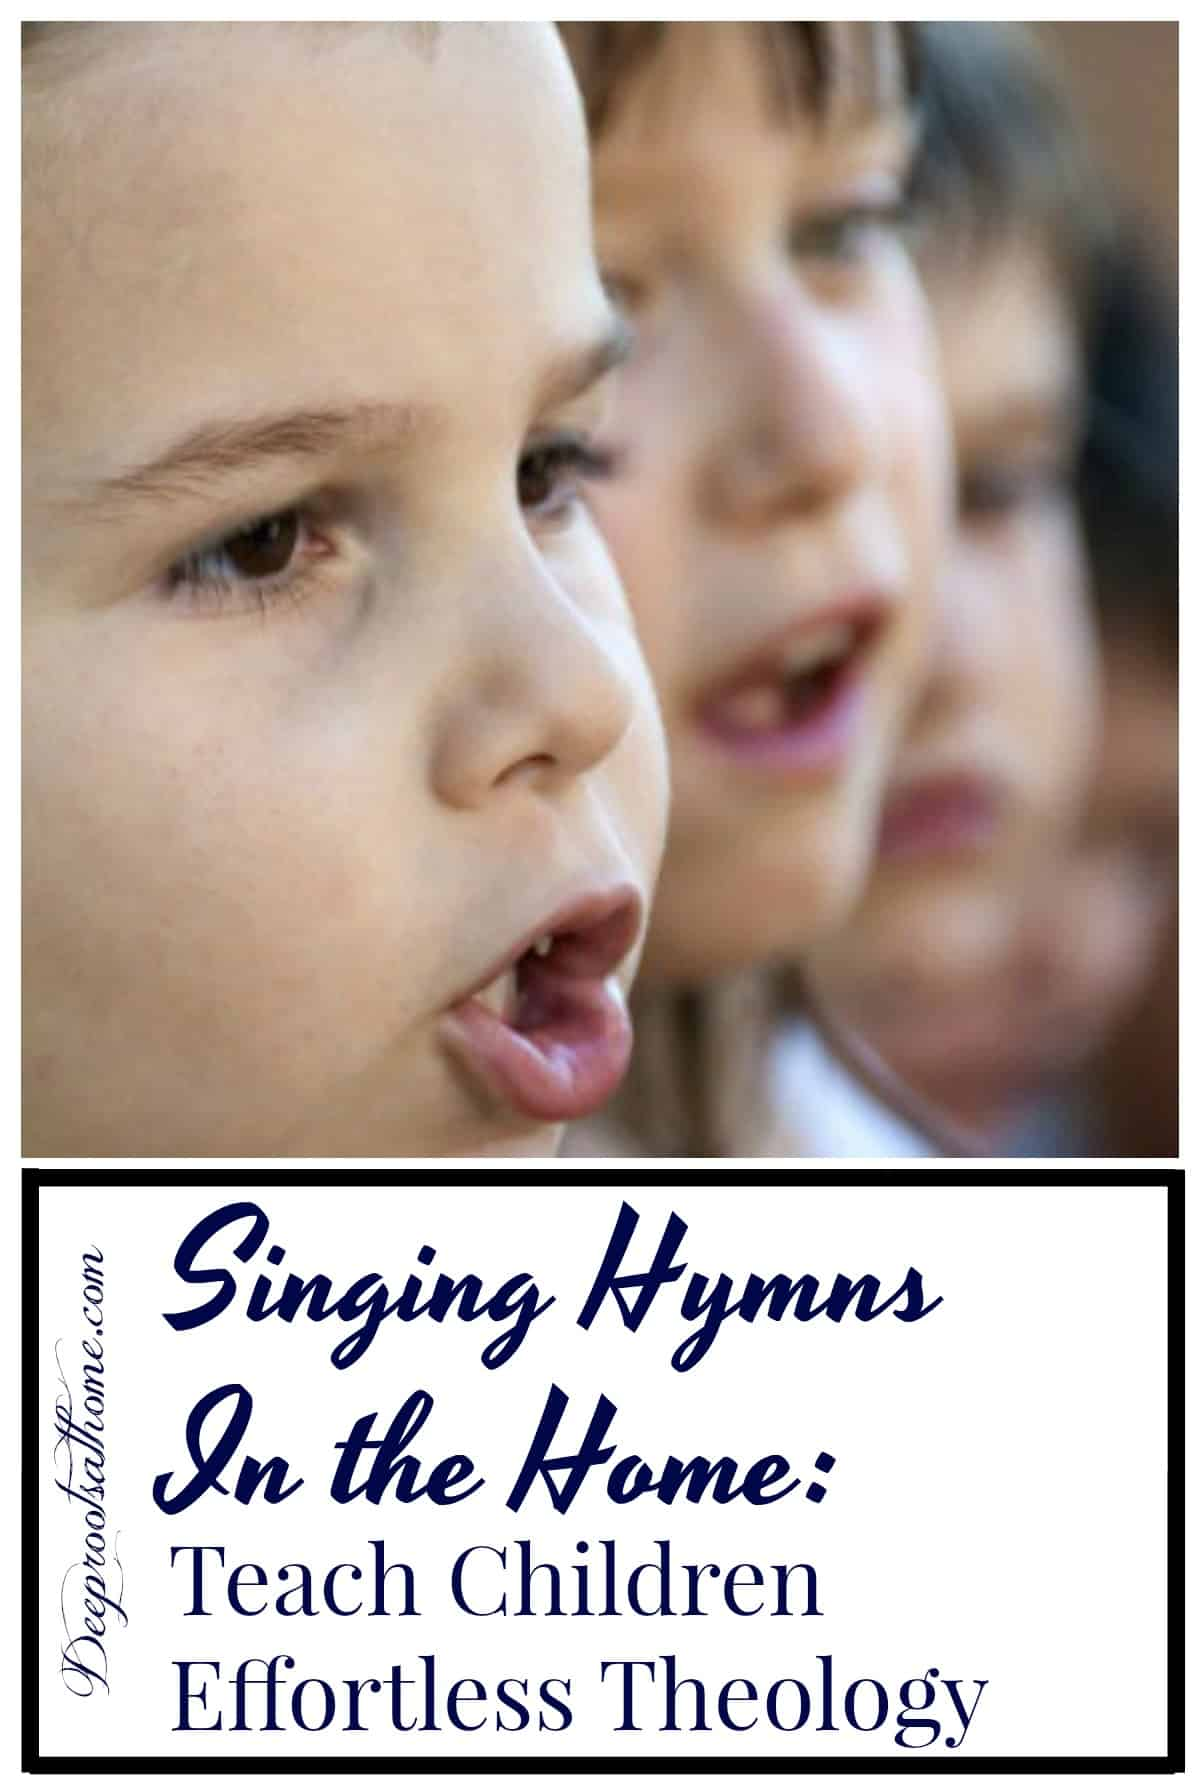 Learning Hymns: Teach Children Effortless Theology, 4 children singing with their hearts